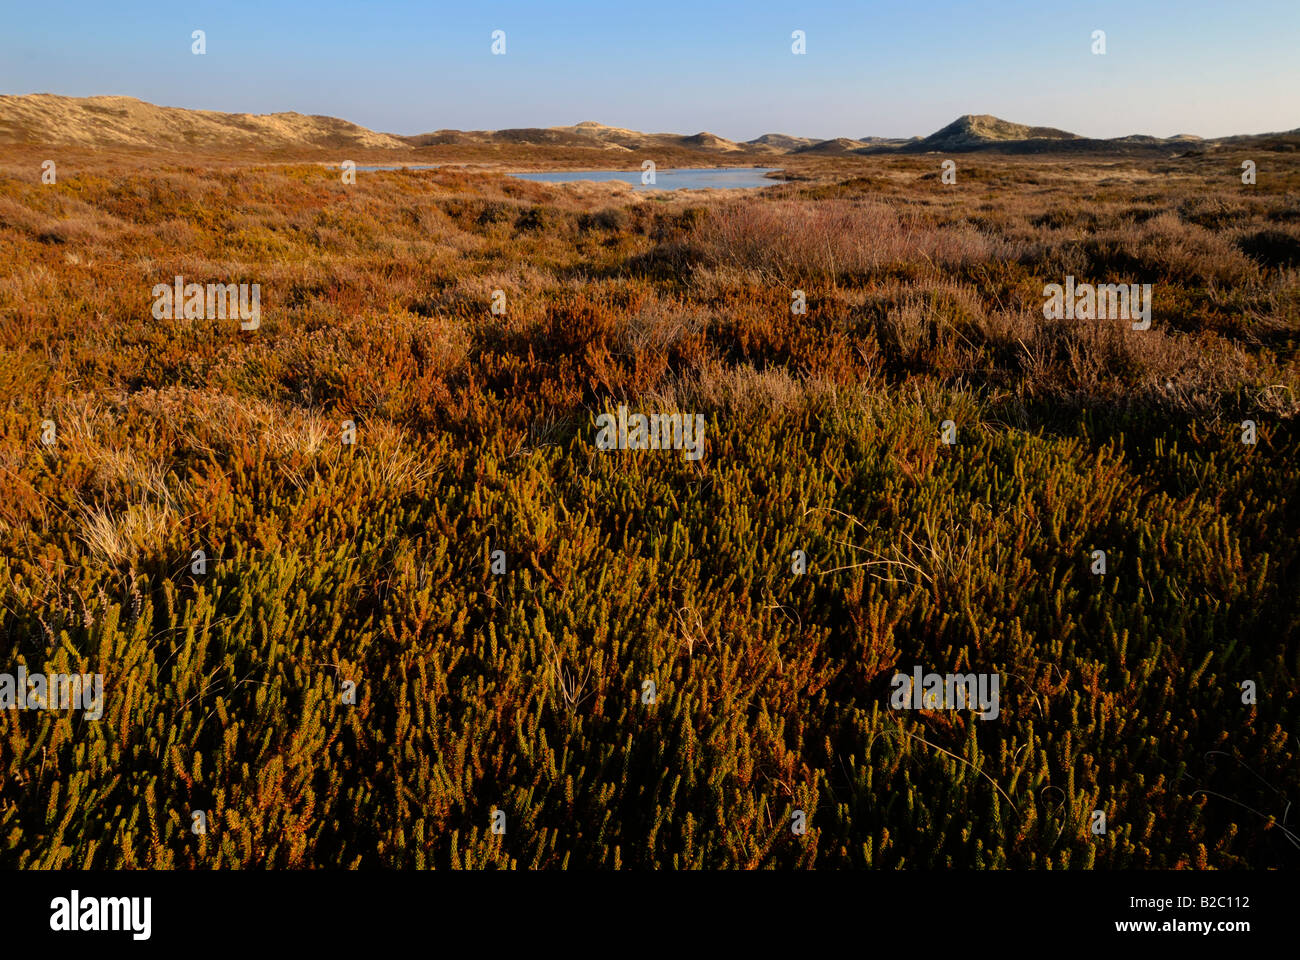 Brown dunes, humid dune valleys, Listland, Sylt, Schleswig-Holstein, Germany, Europe - Stock Image